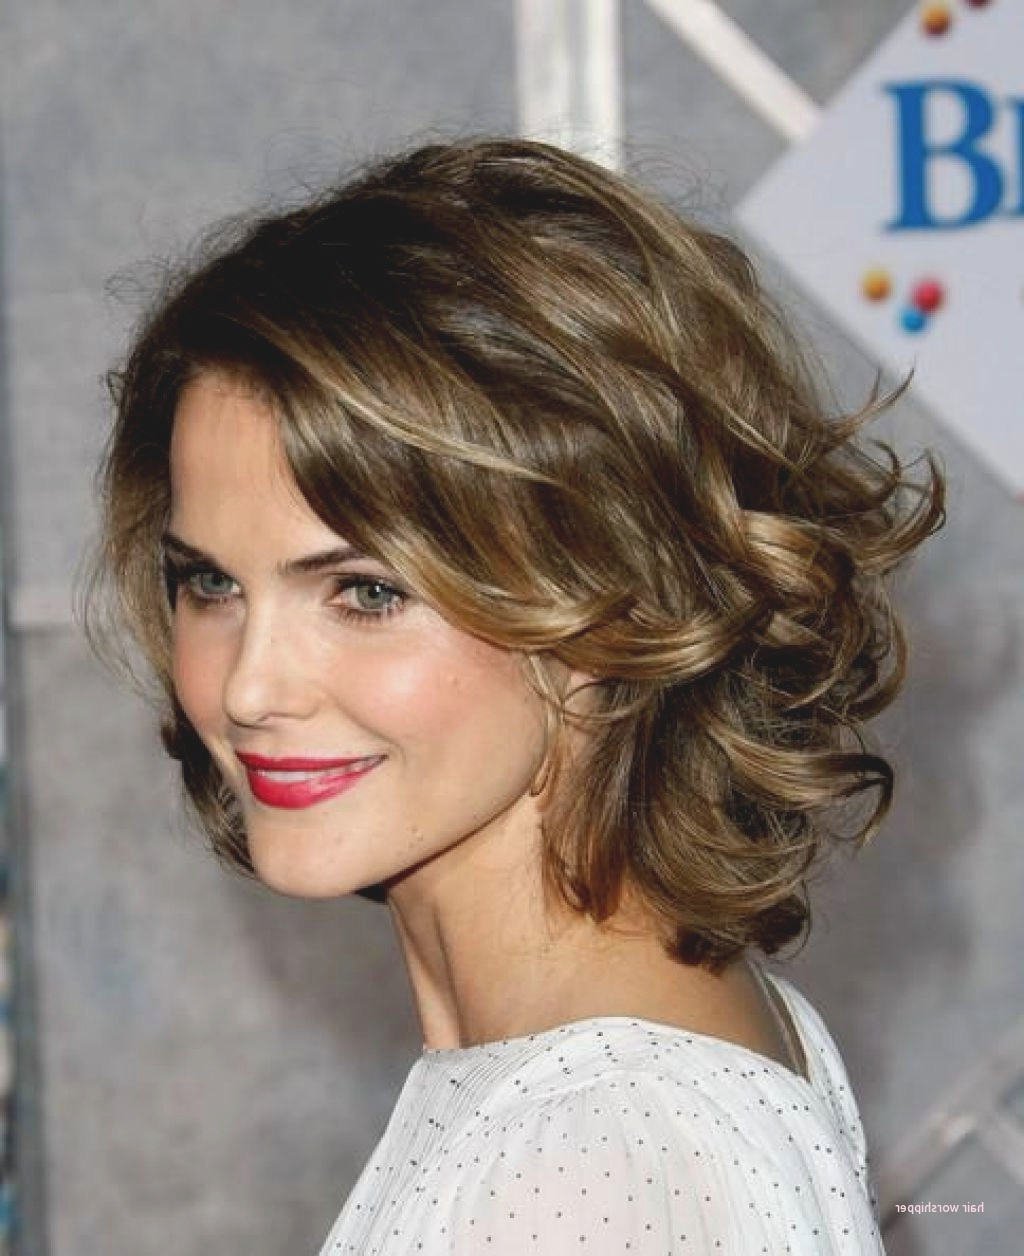 Hairstyles For A Wedding Guest With Short Hair Lovely Stupendoust With Hairstyles For A Wedding Guest With Short Hair (View 10 of 25)